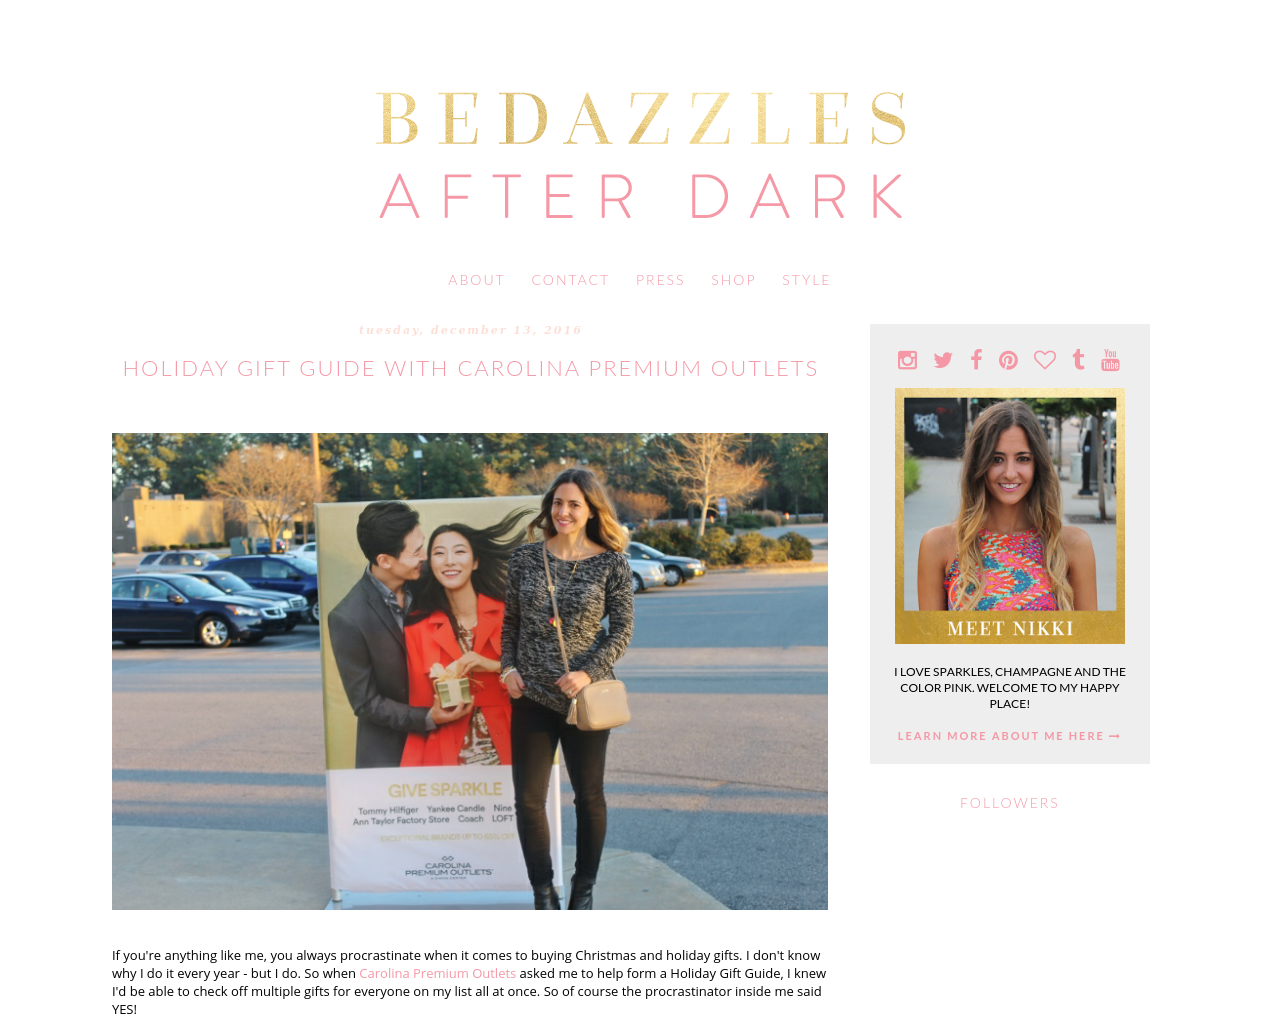 Bedazzles-After-Dark-Advertising-Reviews-Pricing